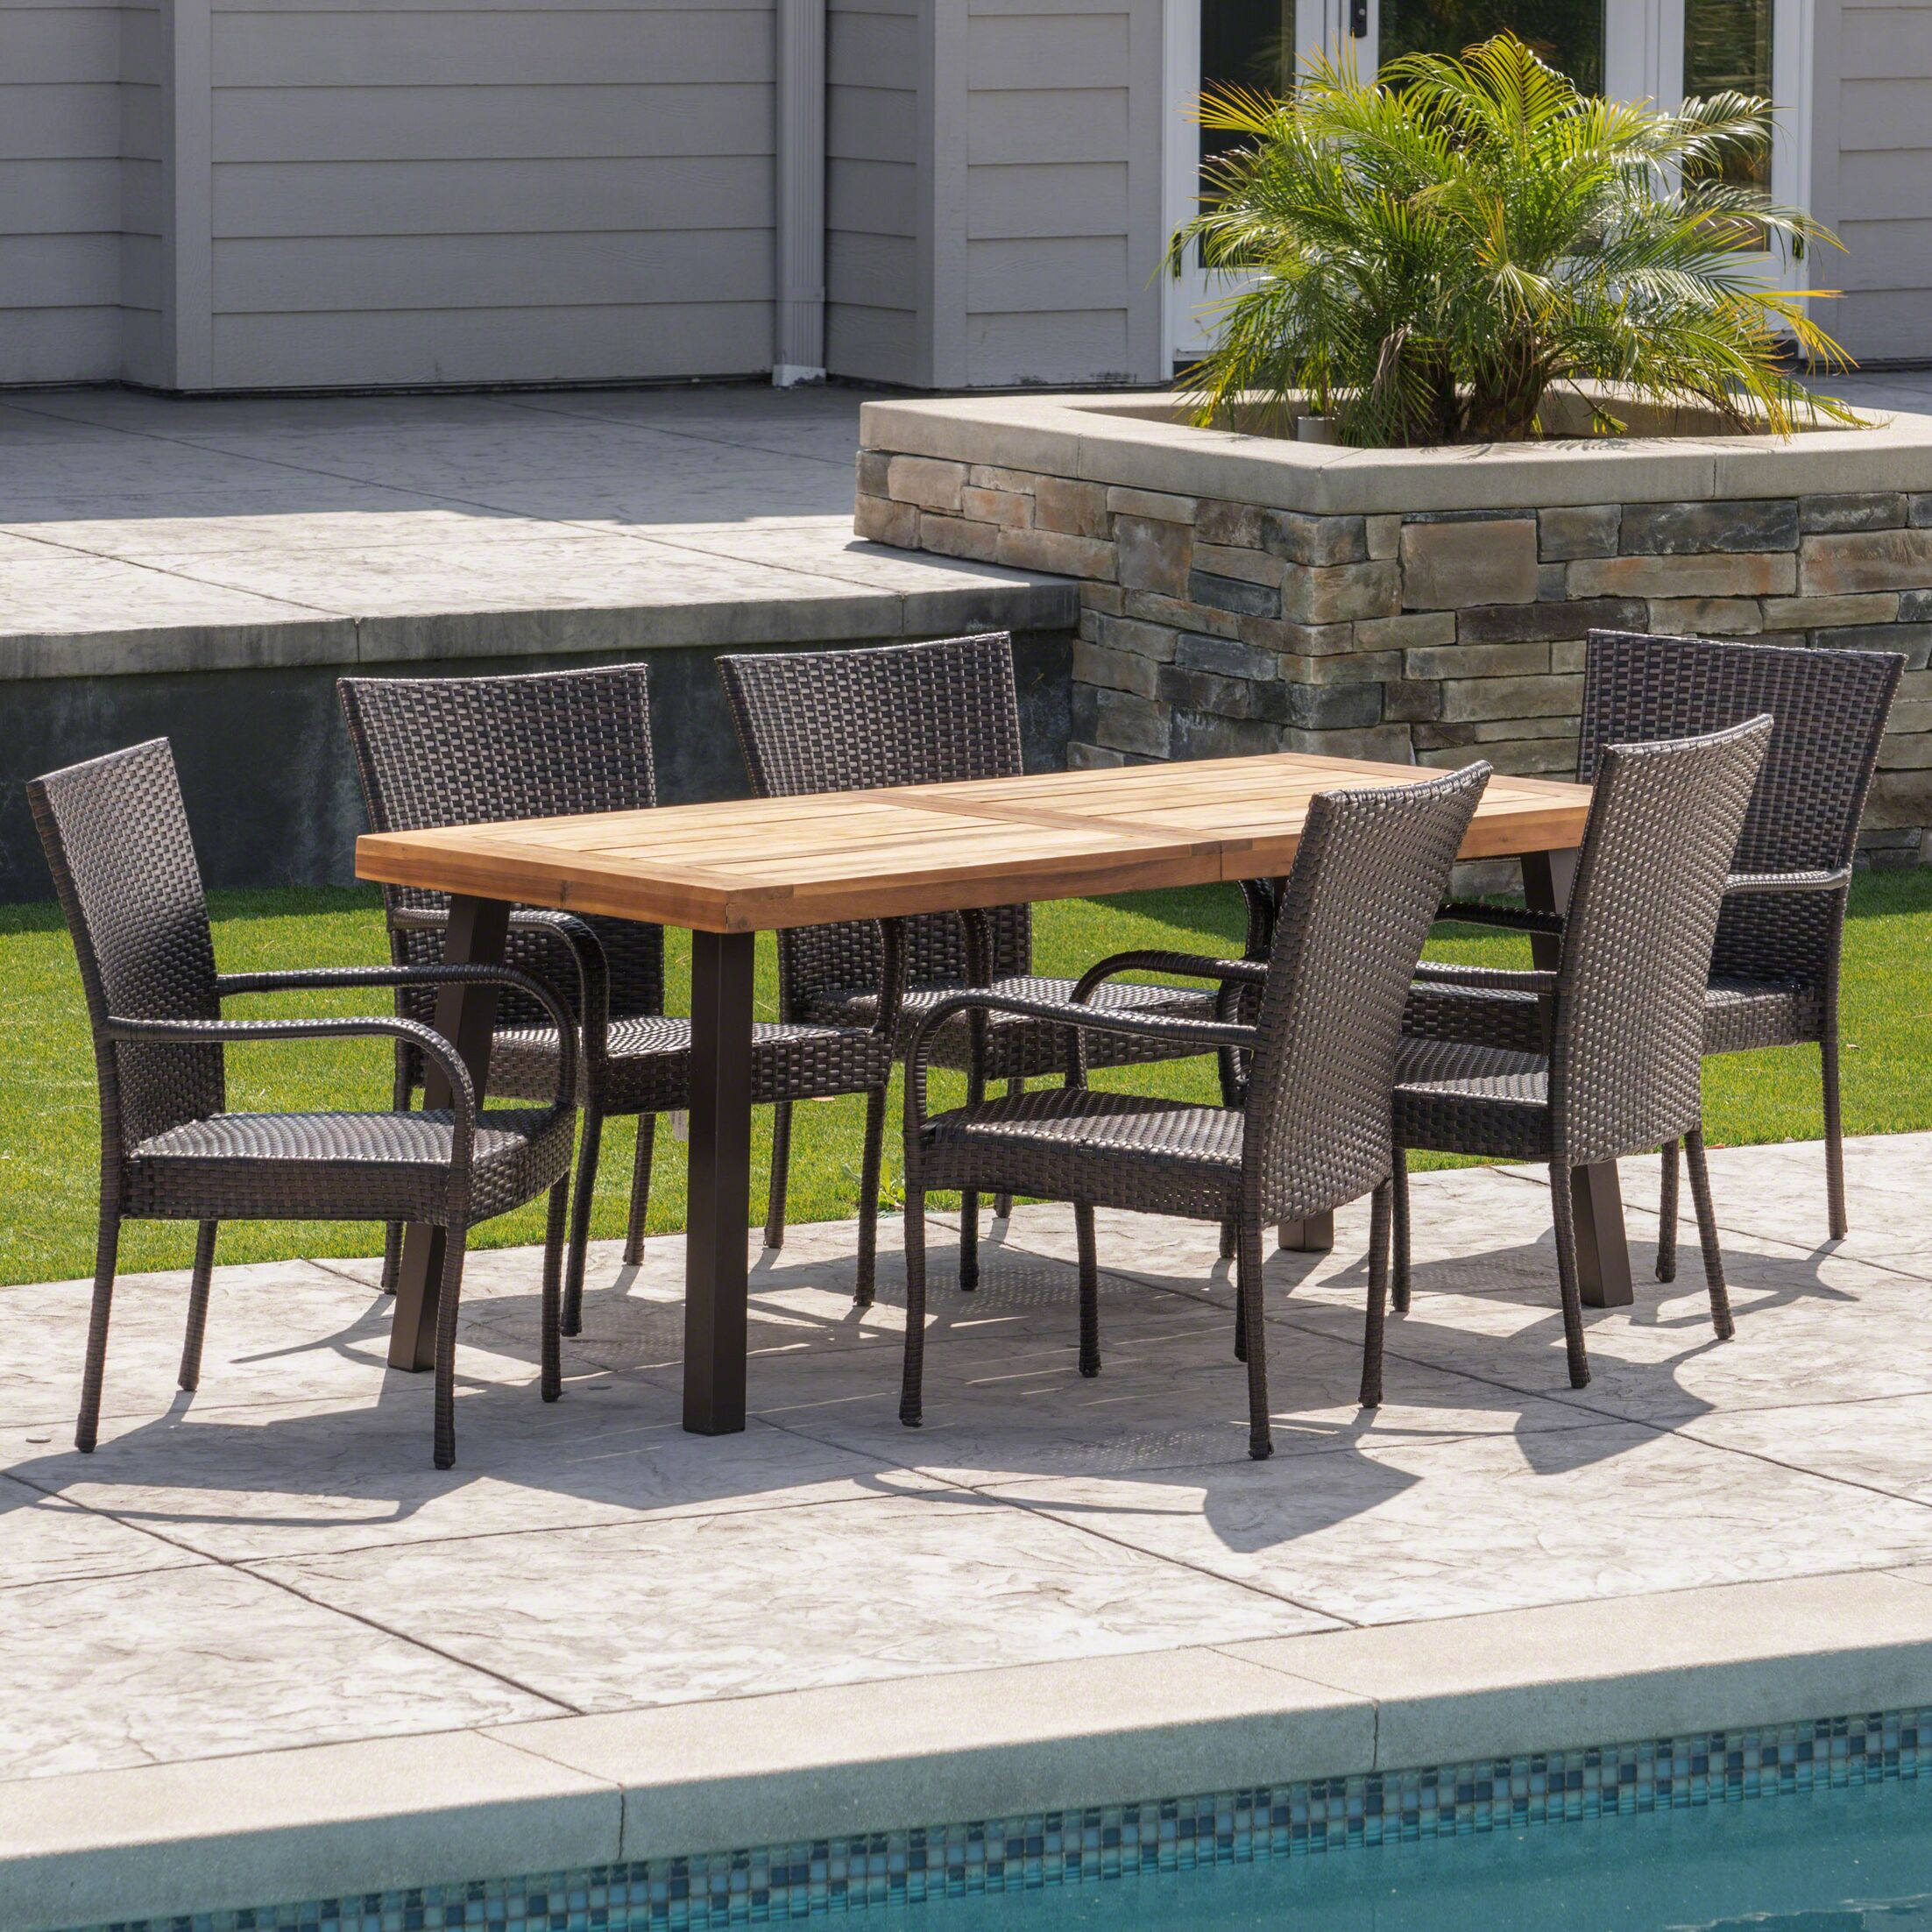 Henthorn Outdoor Acacia Wood/Wicker 7 Piece Dining Set